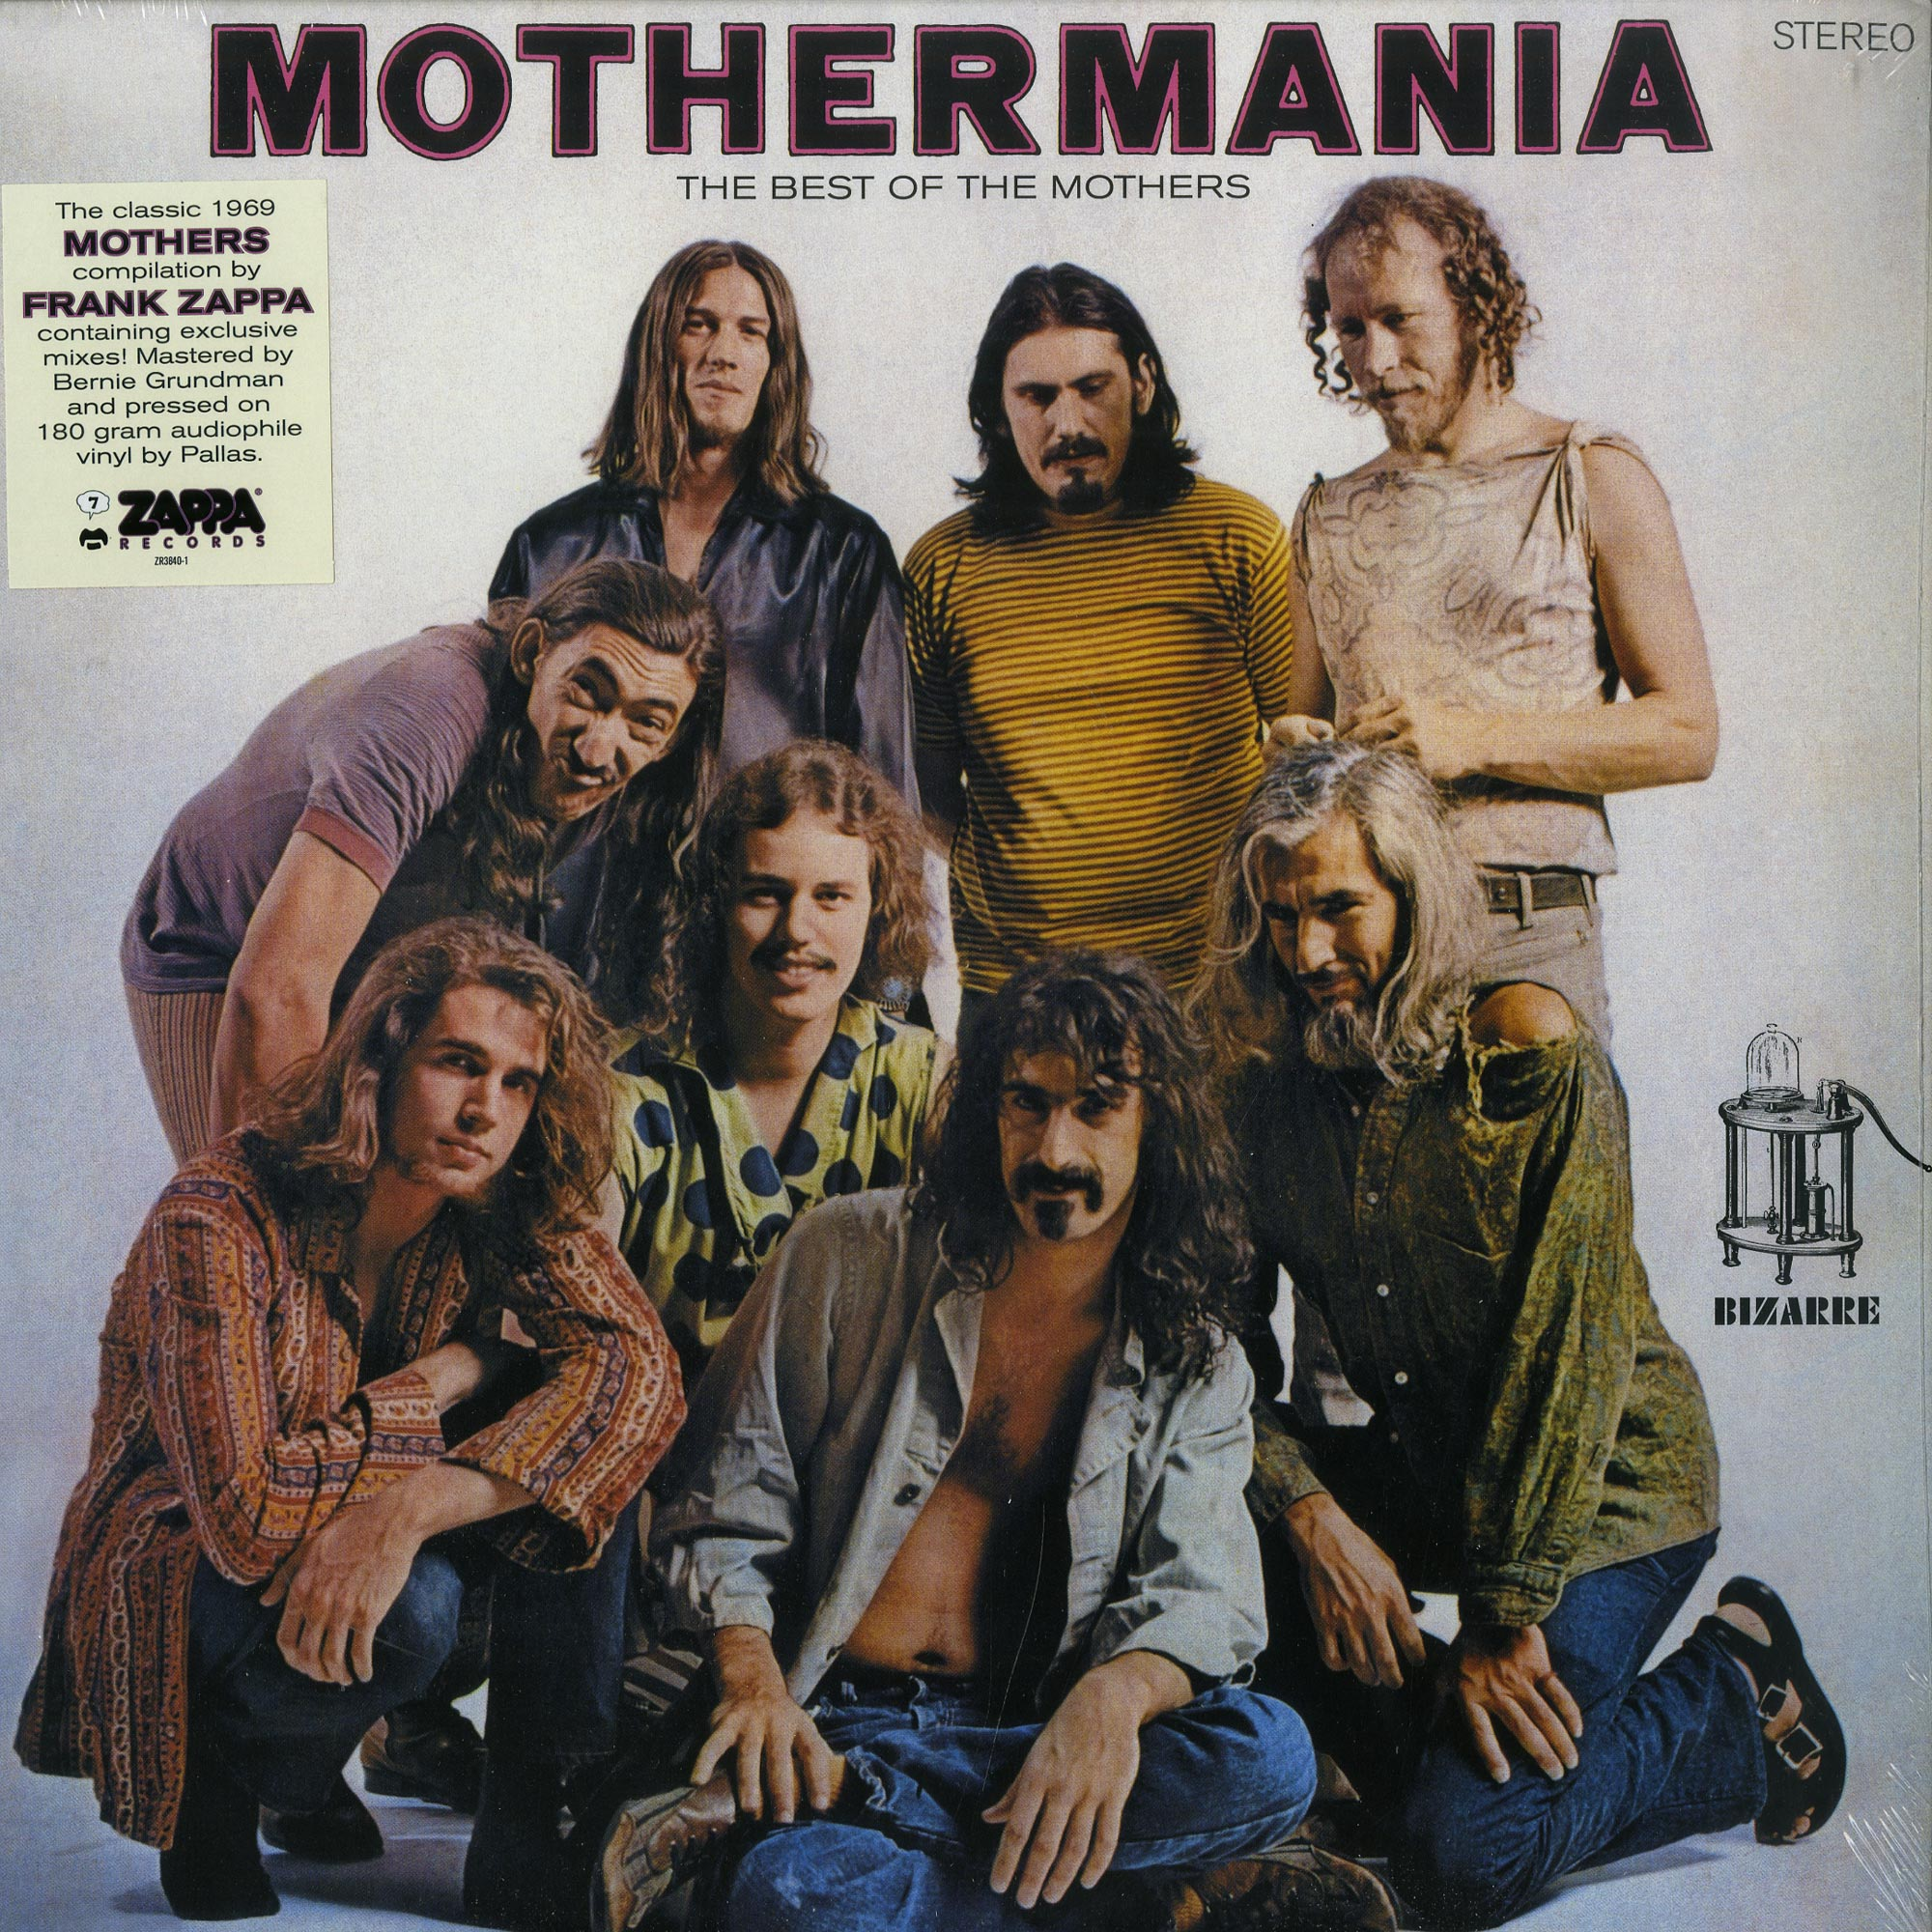 Frank Zappa & The Mothers Of Invention - MOTHERMANIA: THE BEST OF THE MOTHERS